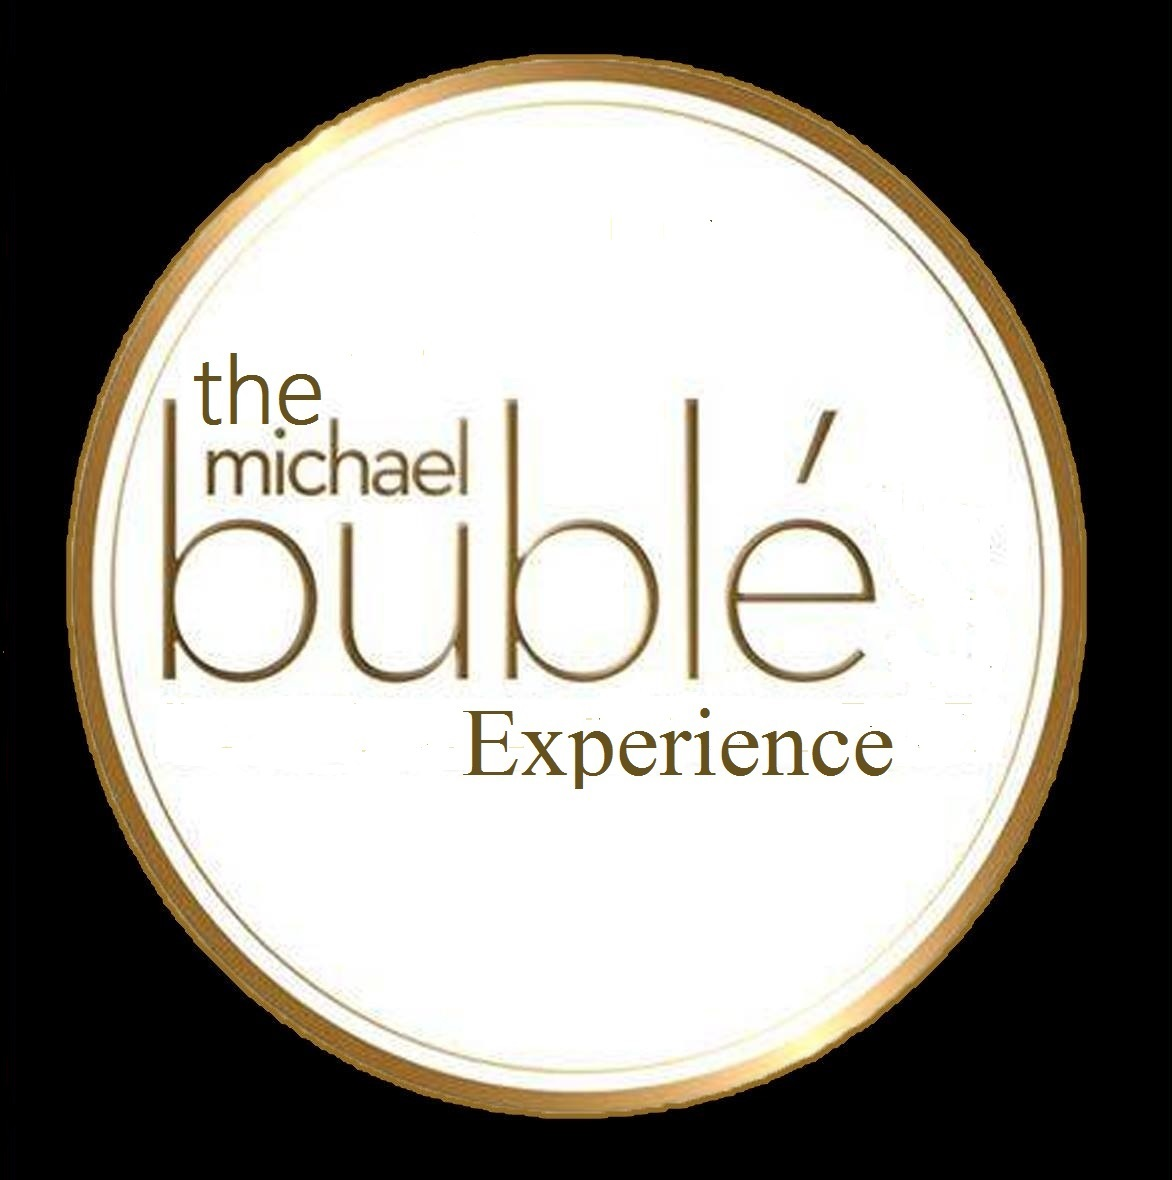 Ticket for 'The Michael Bublé Experience' at Concorde Club, Eastleigh, on Thursday 23rd May 2019 (Doors open at 7pm)